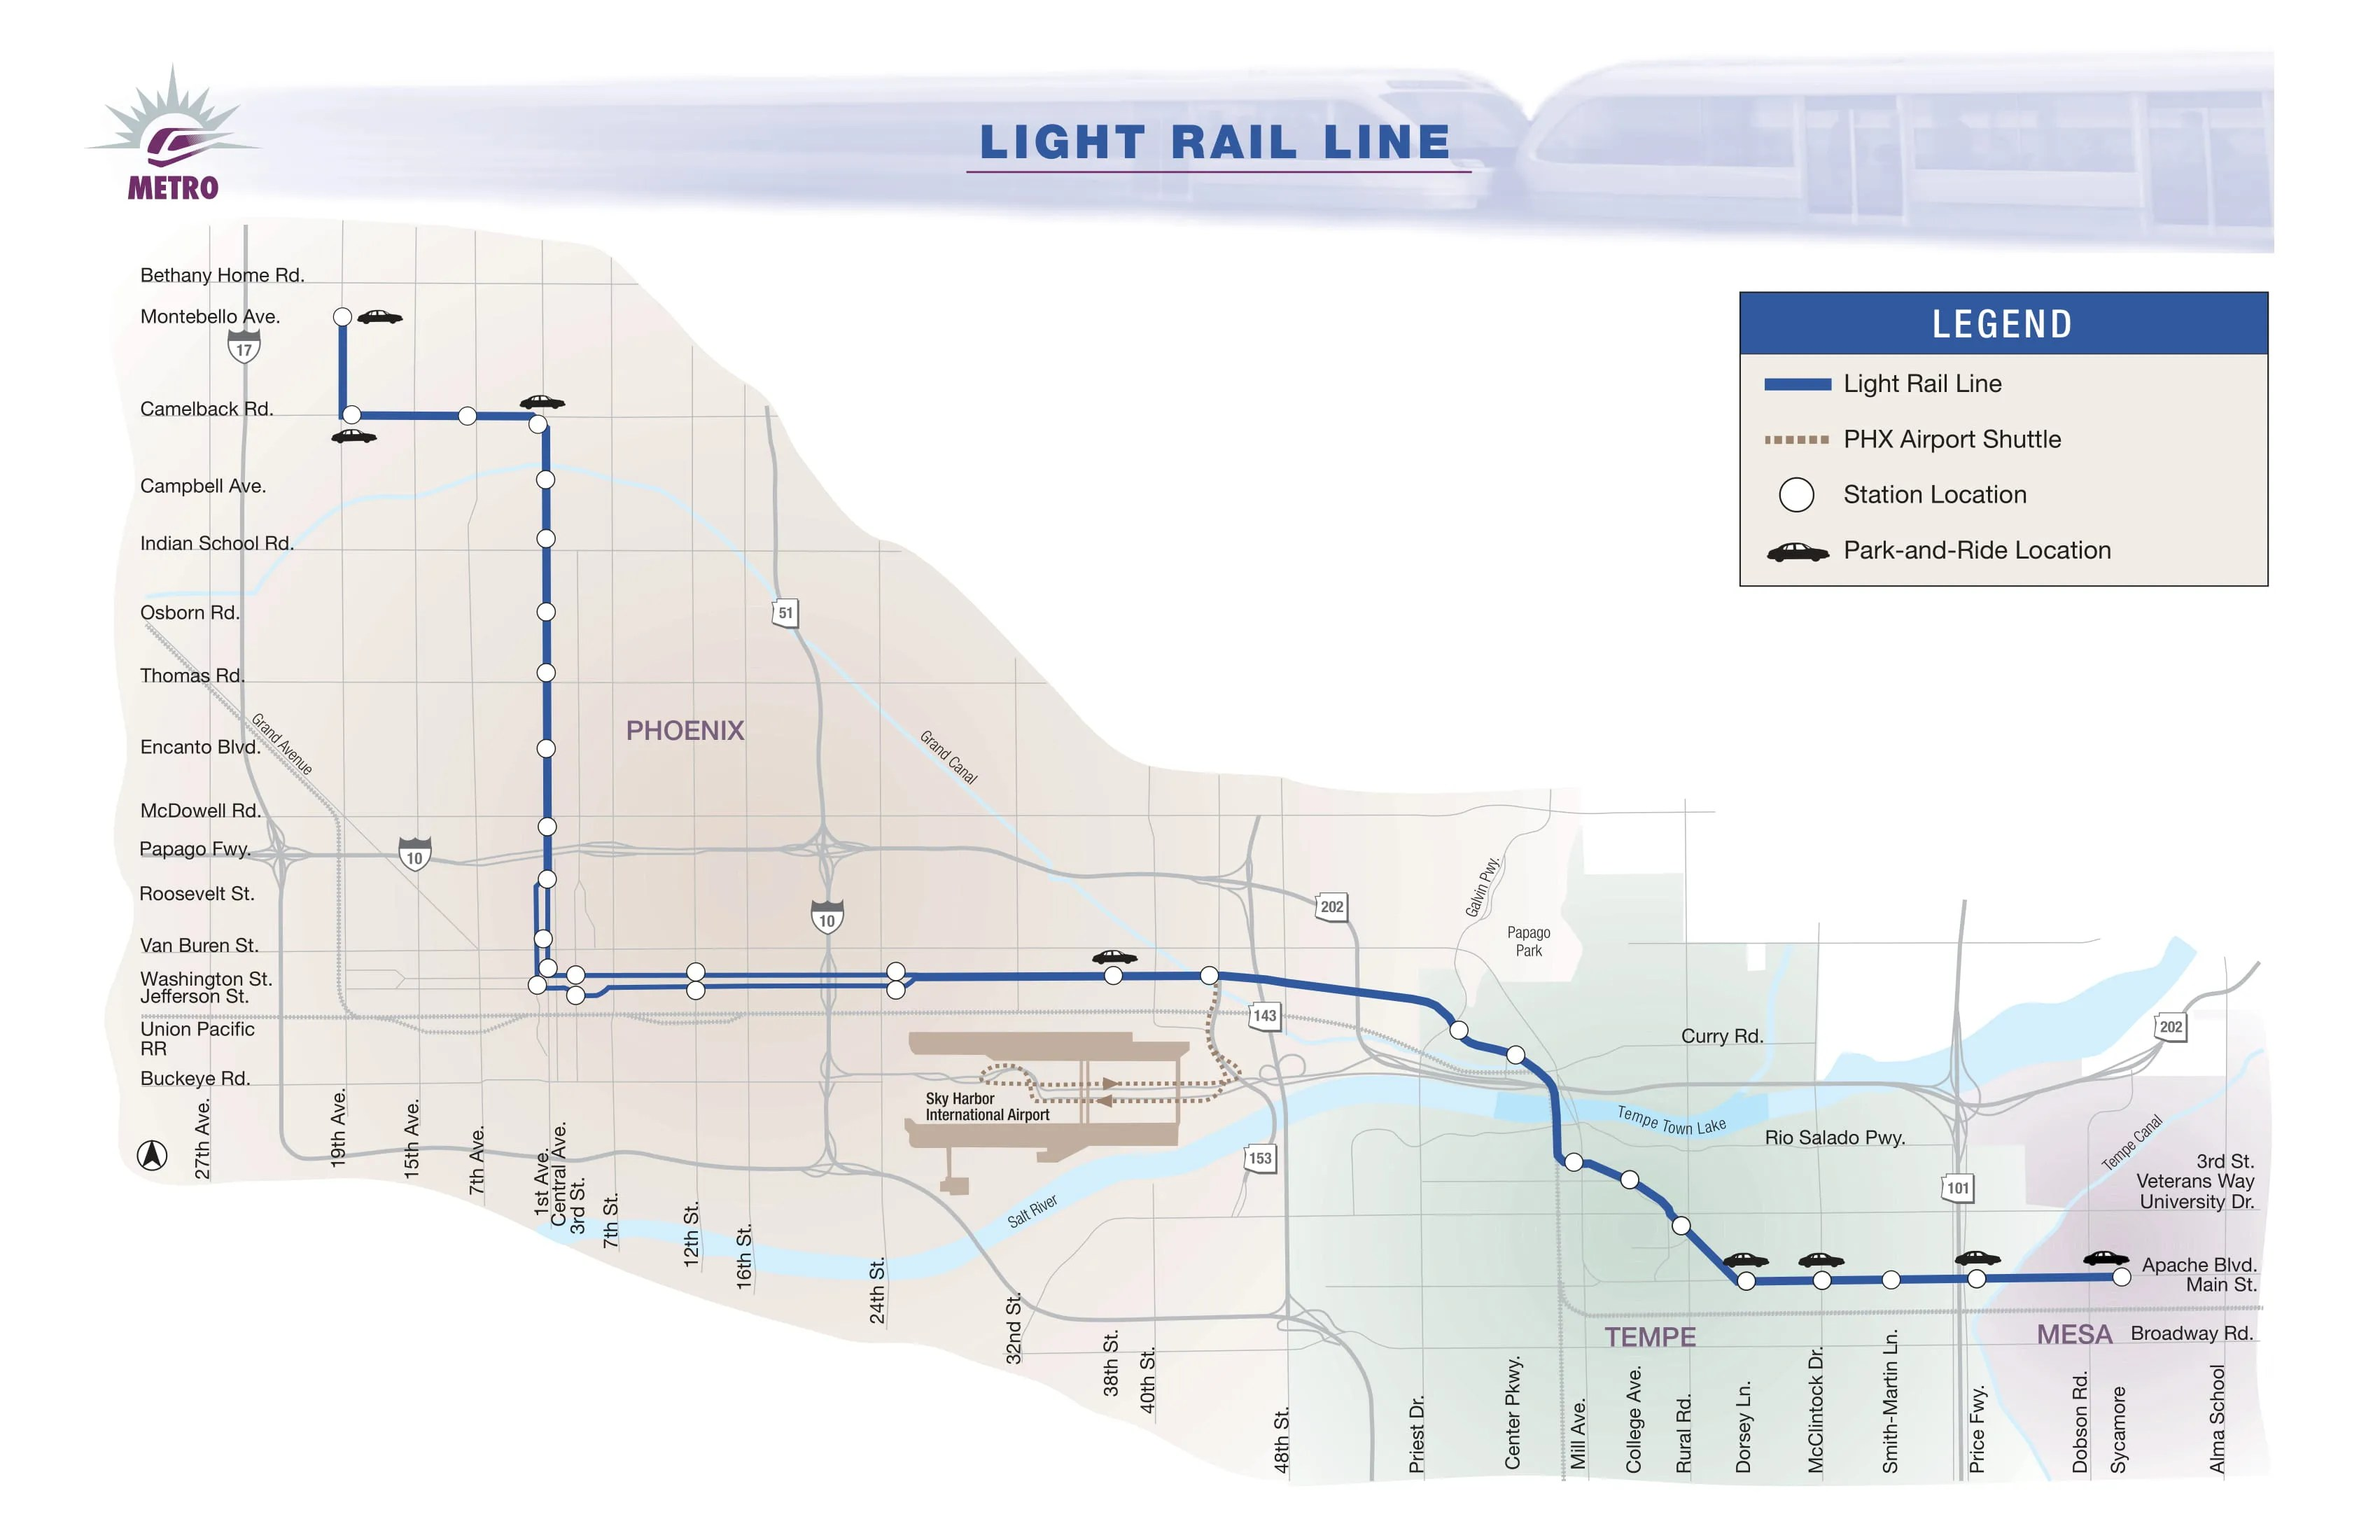 is light rail coming to your